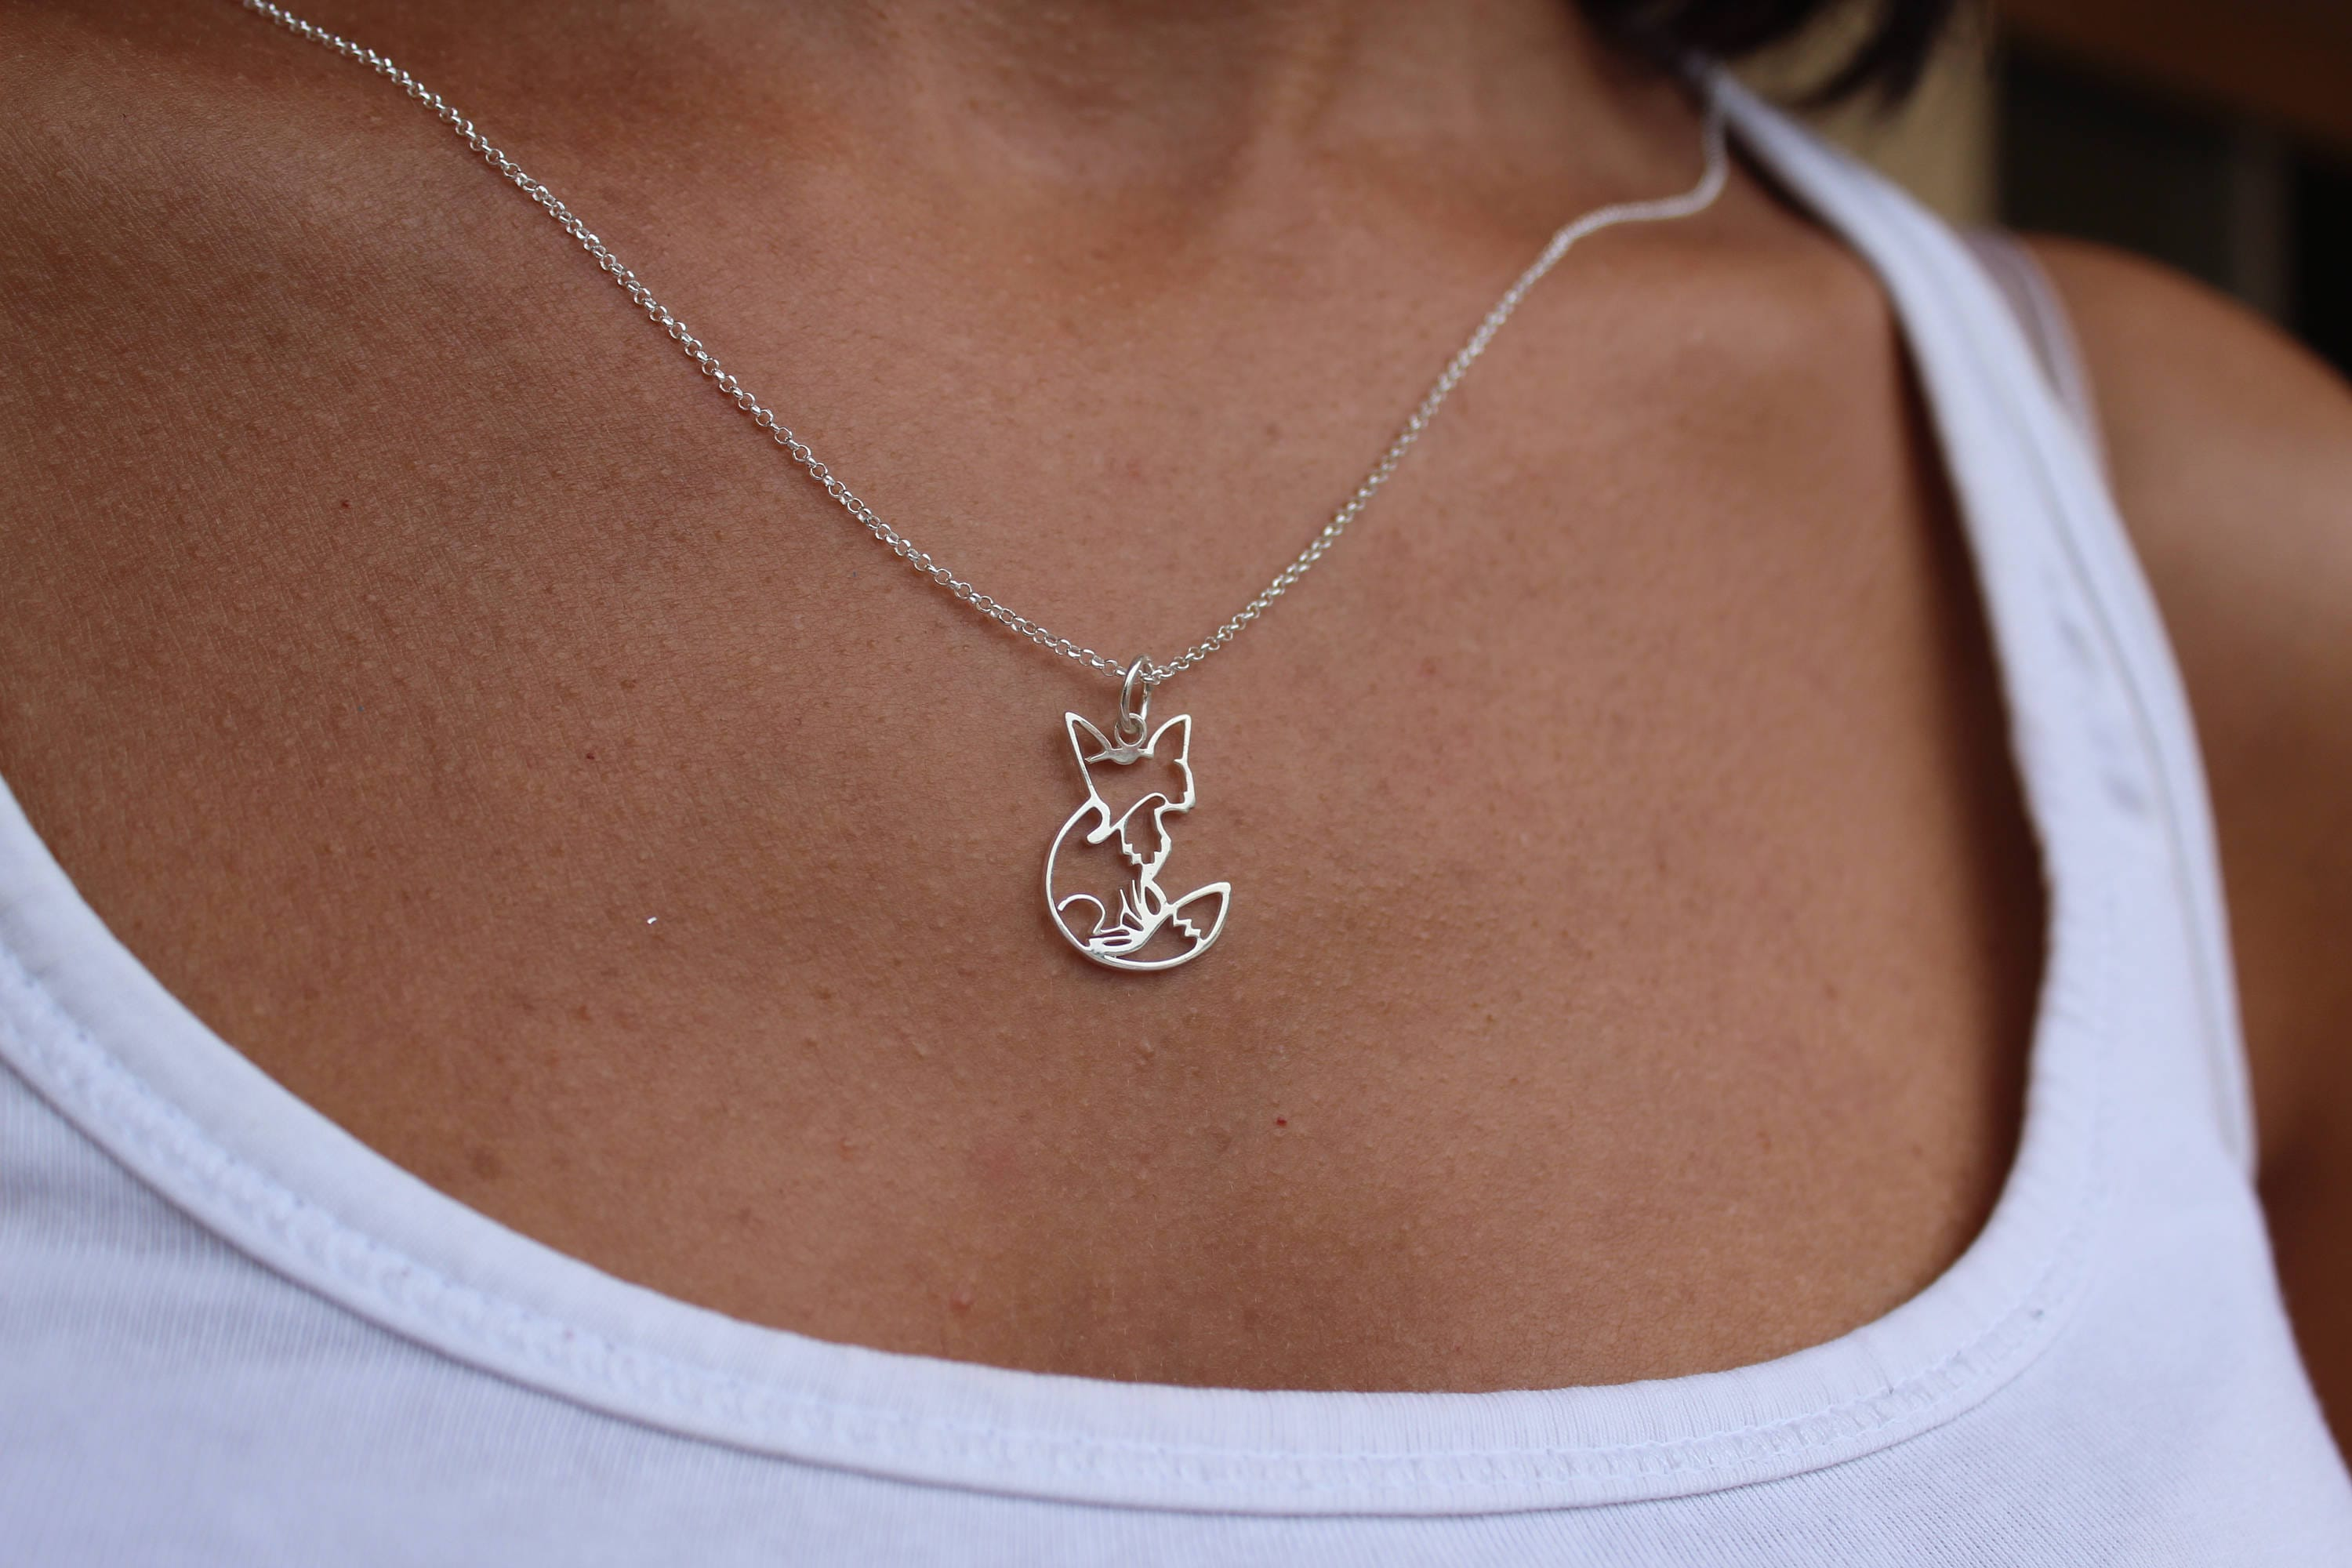 Necklaces For Women Fox Necklace Origami Necklace Women Necklace